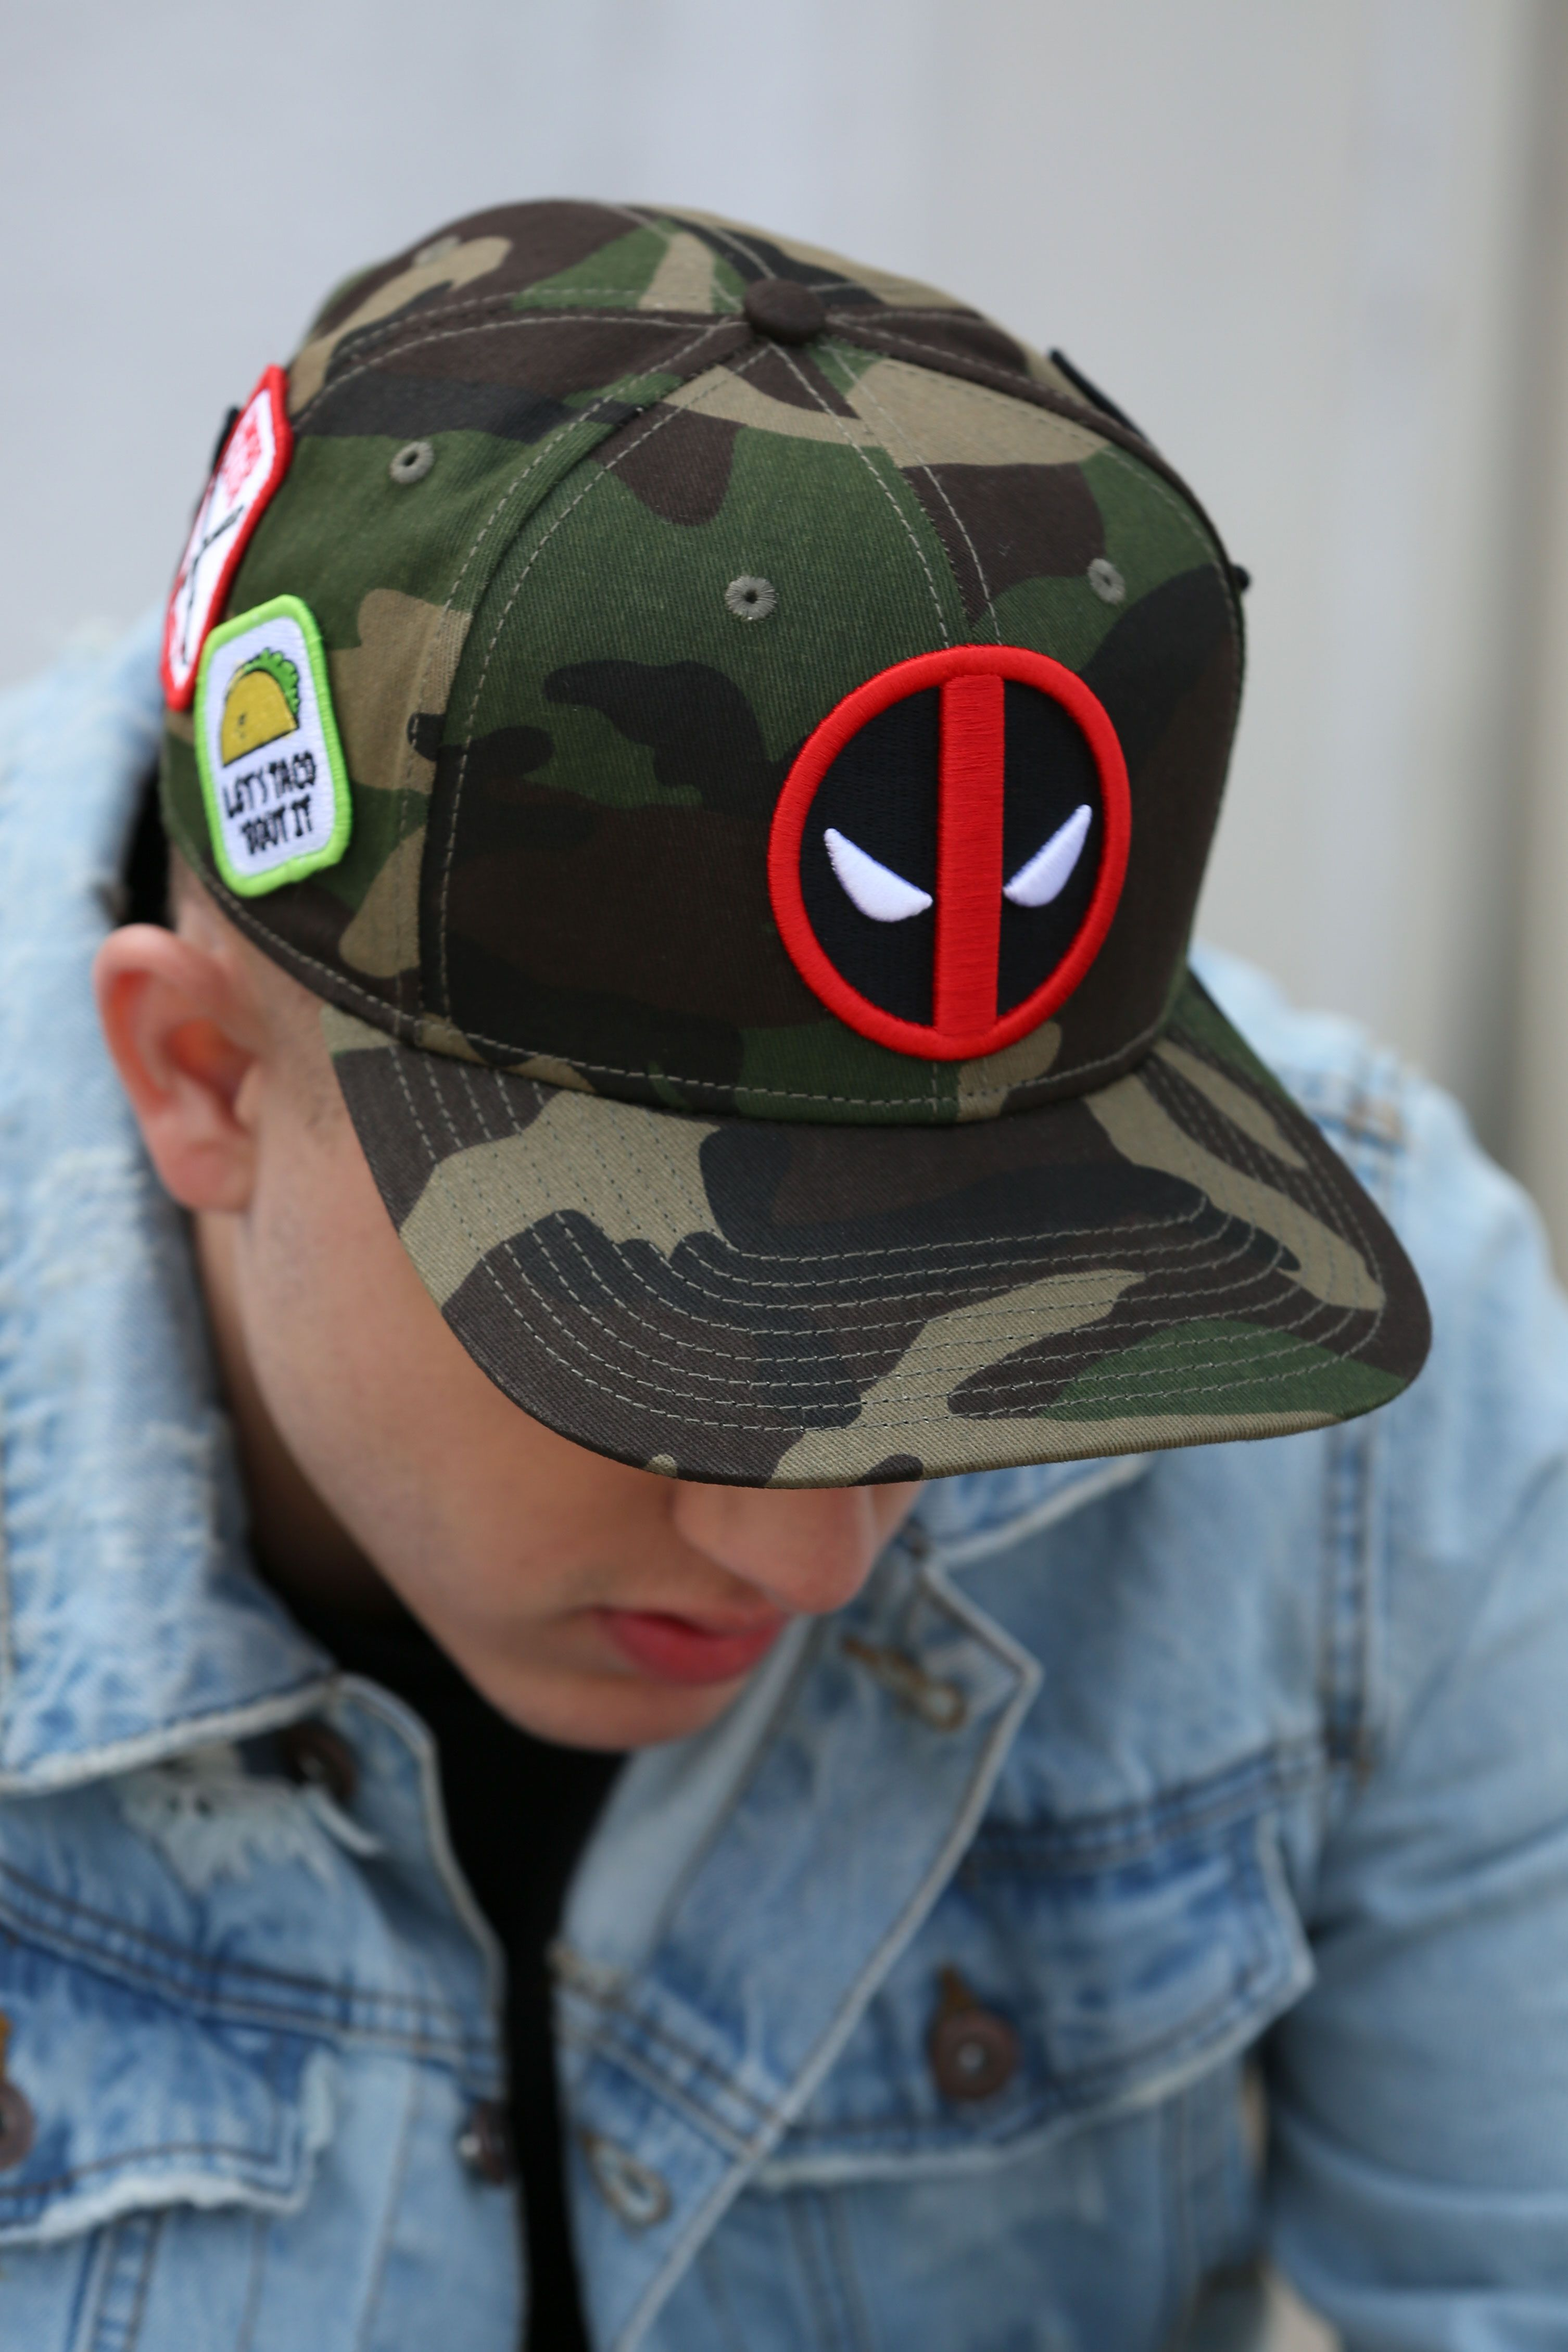 sale retailer 1570a 016c7 Let s Taco About this hat! New Deadpool gear available now at Lids.